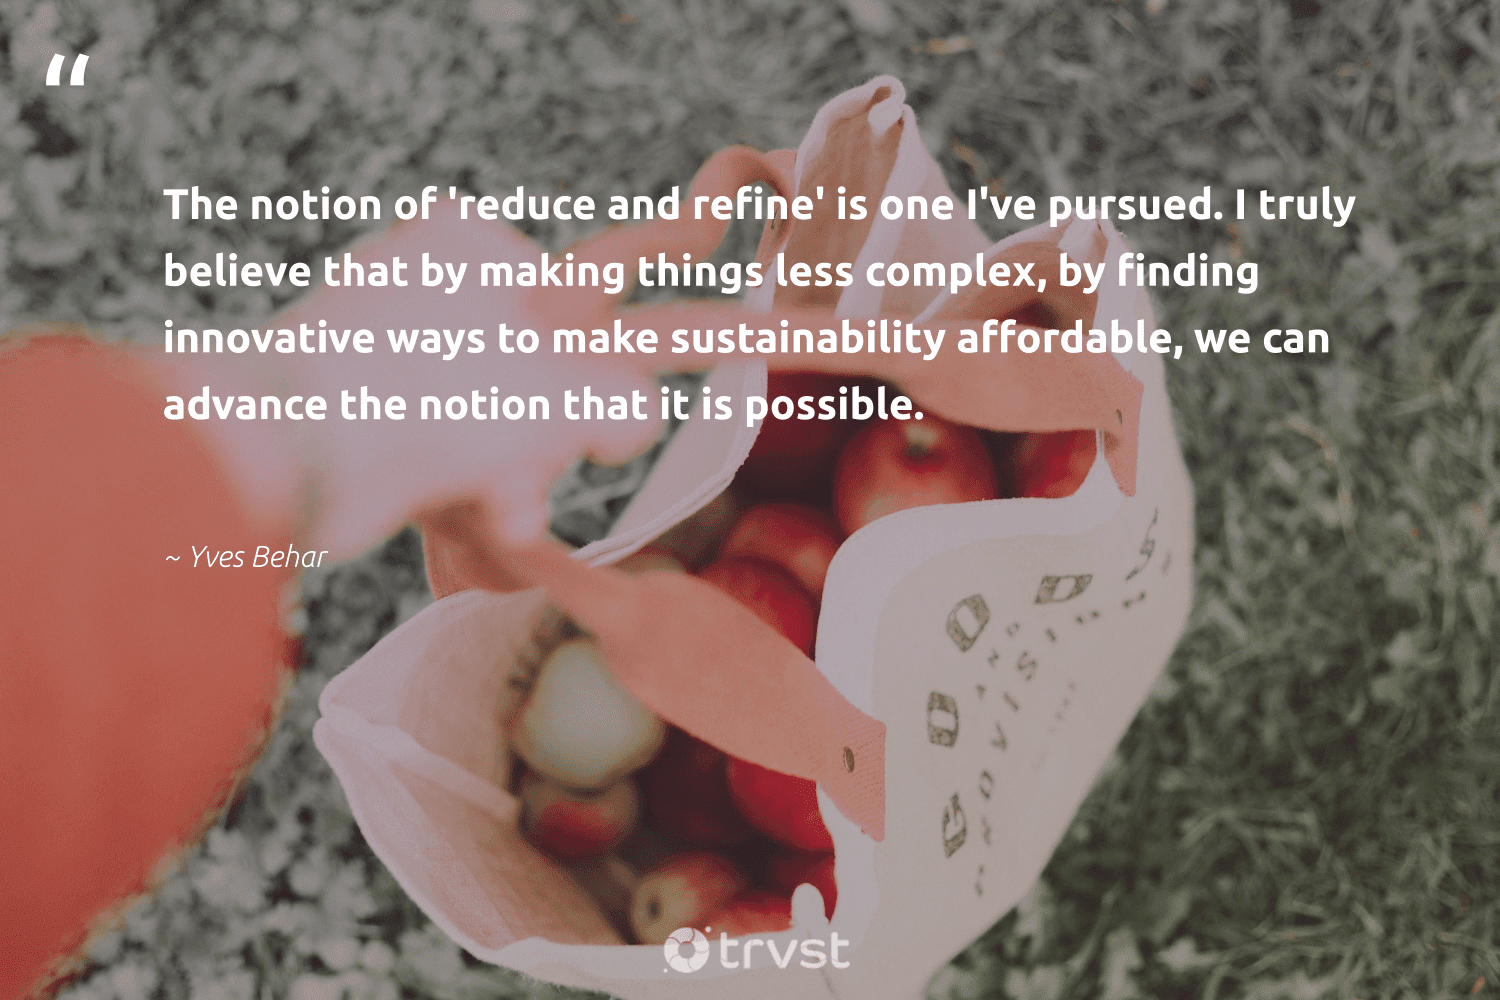 """""""The notion of 'reduce and refine' is one I've pursued. I truly believe that by making things less complex, by finding innovative ways to make sustainability affordable, we can advance the notion that it is possible.""""  - Yves Behar #trvst #quotes #sustainability #reduce #affordable #upcycling #greenliving #sustainableliving #beinspired #recycle #gogreen #wastefree"""